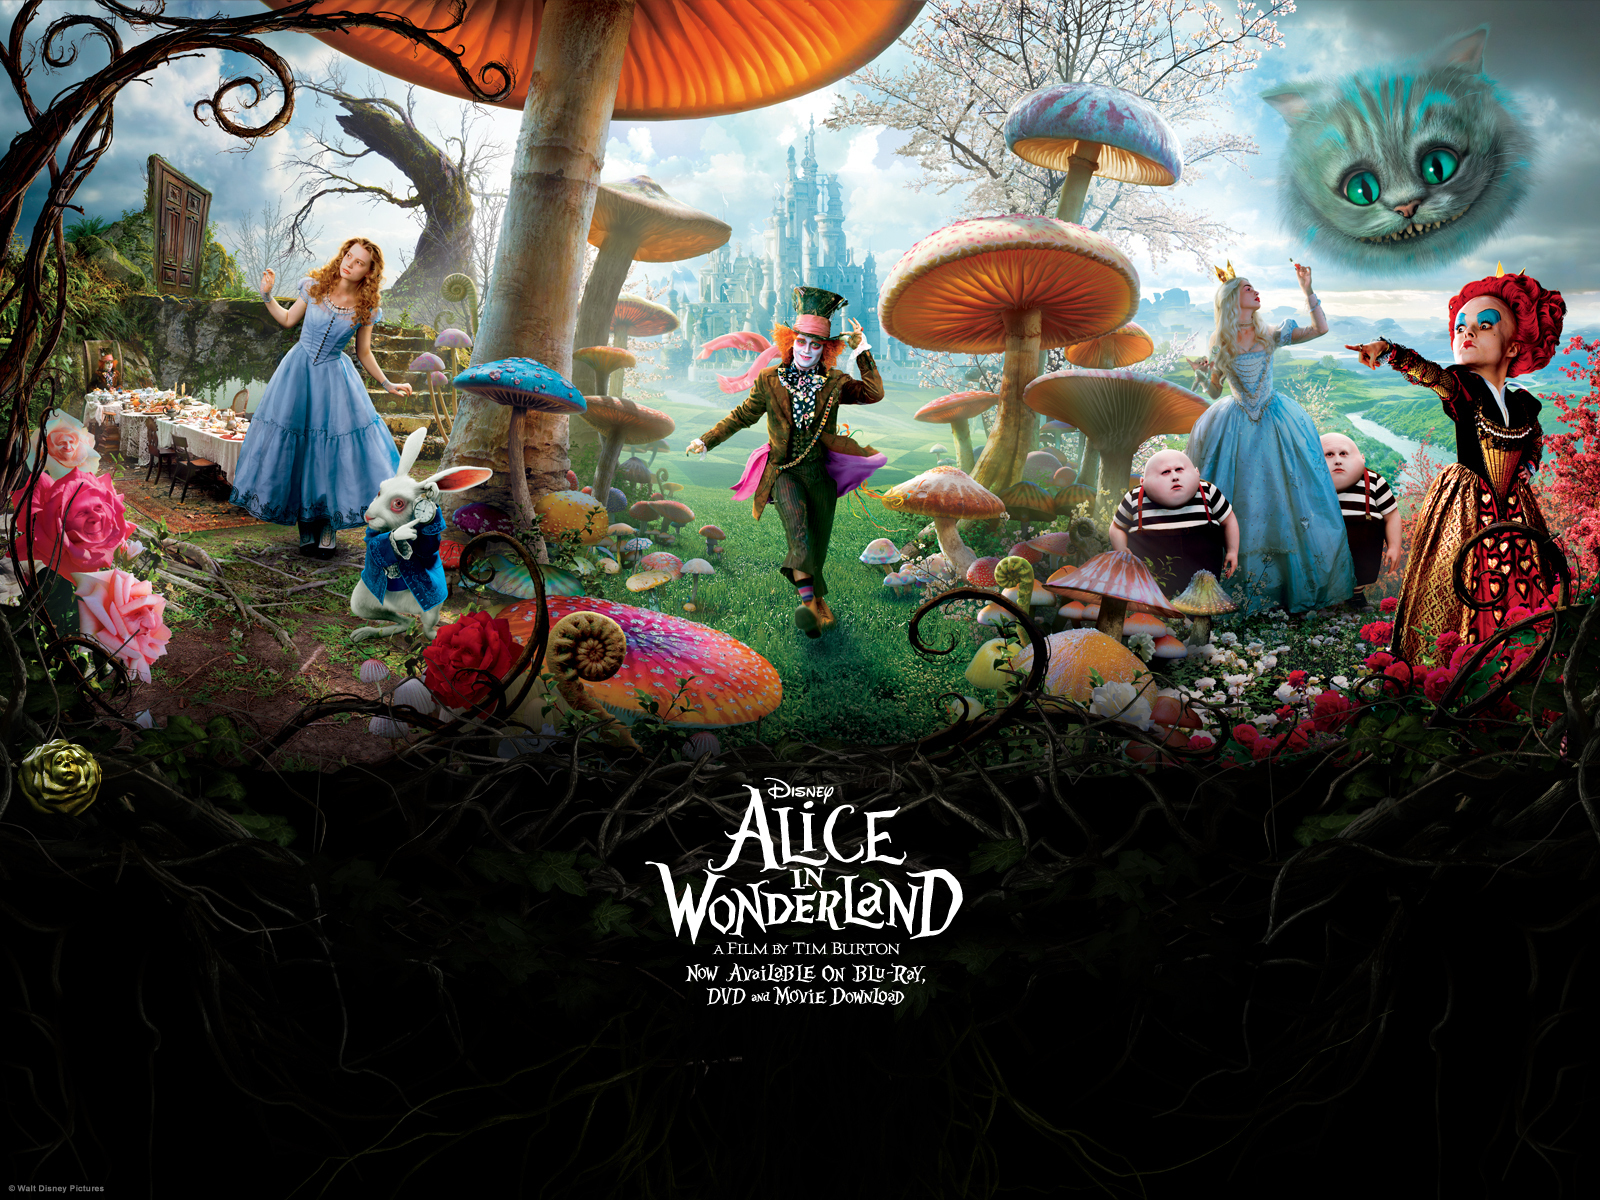 alice in wonderland quotes wallpaper quotesgram. Black Bedroom Furniture Sets. Home Design Ideas